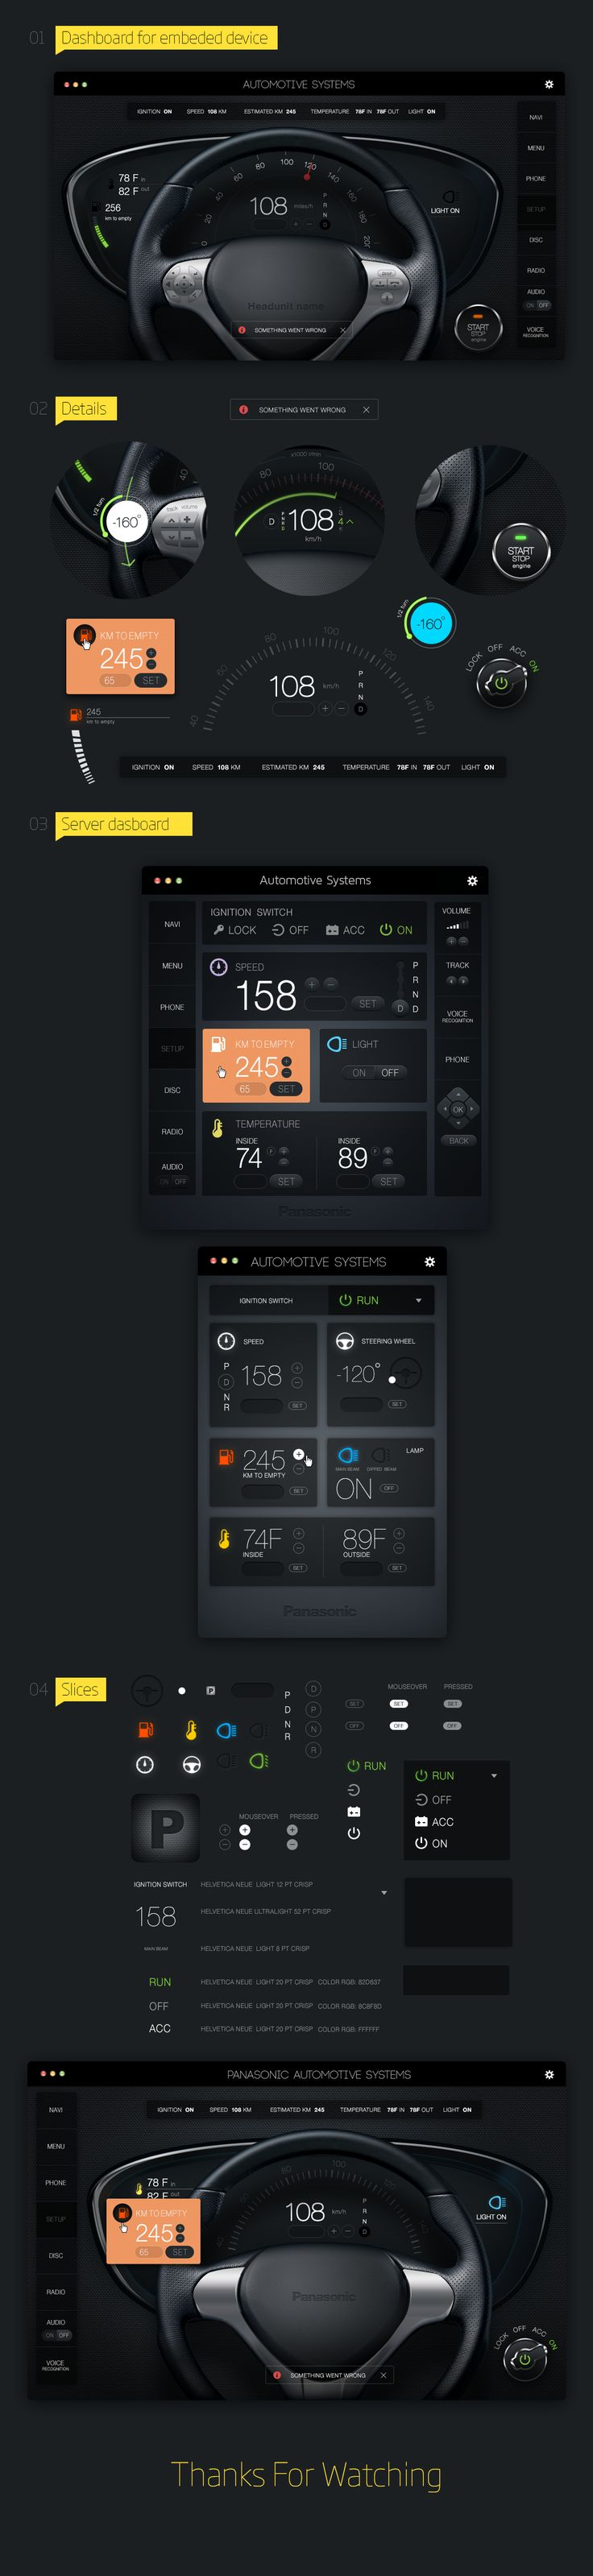 Panasonic Head Unit Controller, Interface © Николай Апостол #car #vehicle #ui